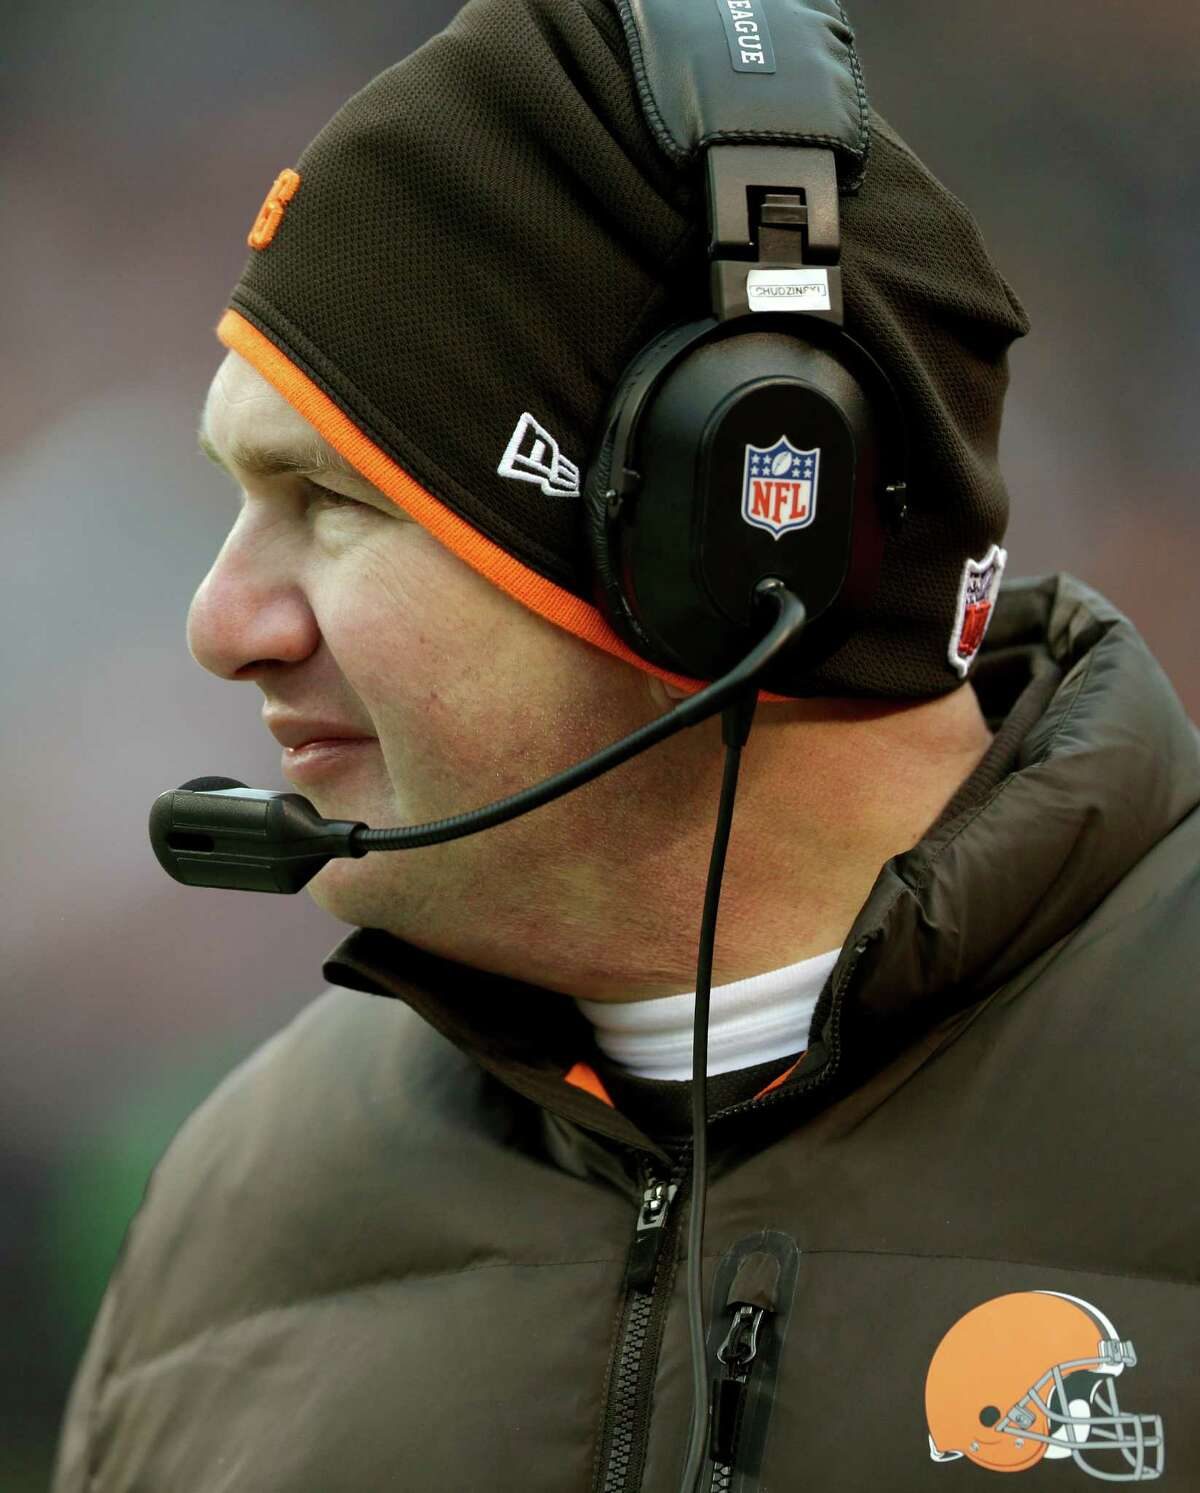 Cleveland Browns head coach Rob Chudzinski looks on from the sidelines in the fourth quarter of an NFL football game against the Chicago Bears, Sunday, Dec. 15, 2013, in Cleveland. (AP Photo/Tony Dejak) ORG XMIT: CDS121